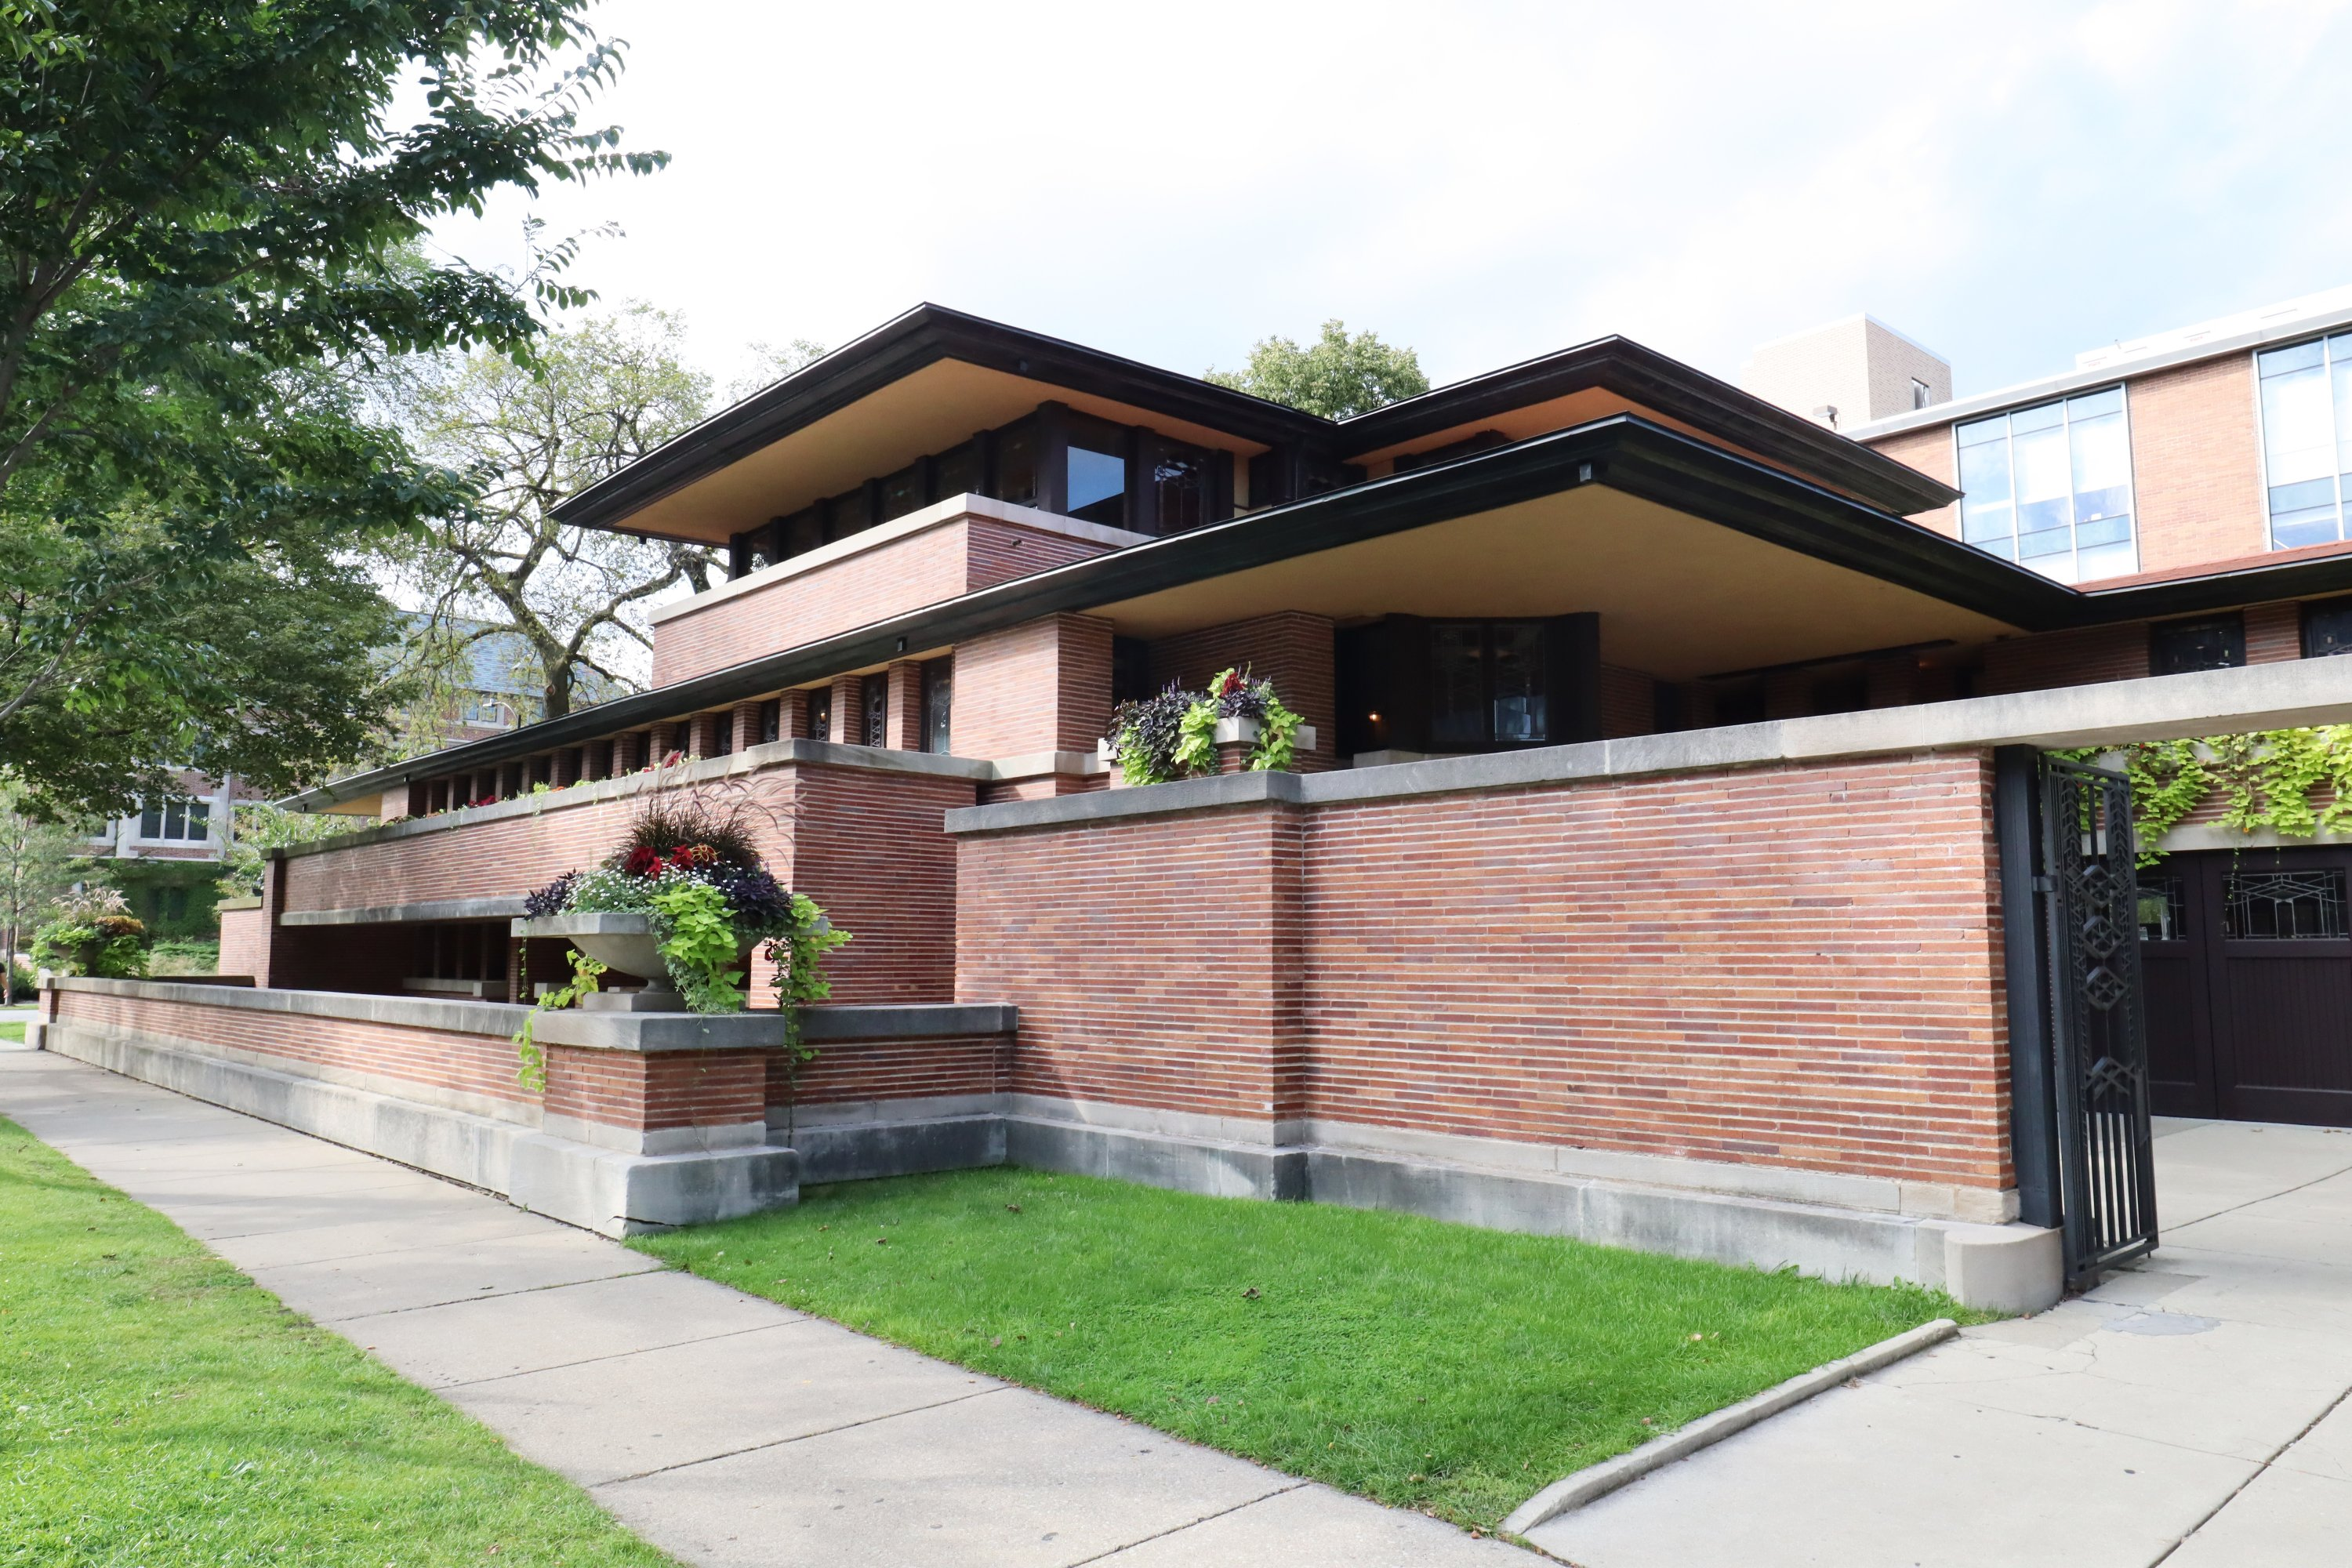 The Robie House in Chicago is Wright's most elaborate Prairie-style home. (DPA Photo)